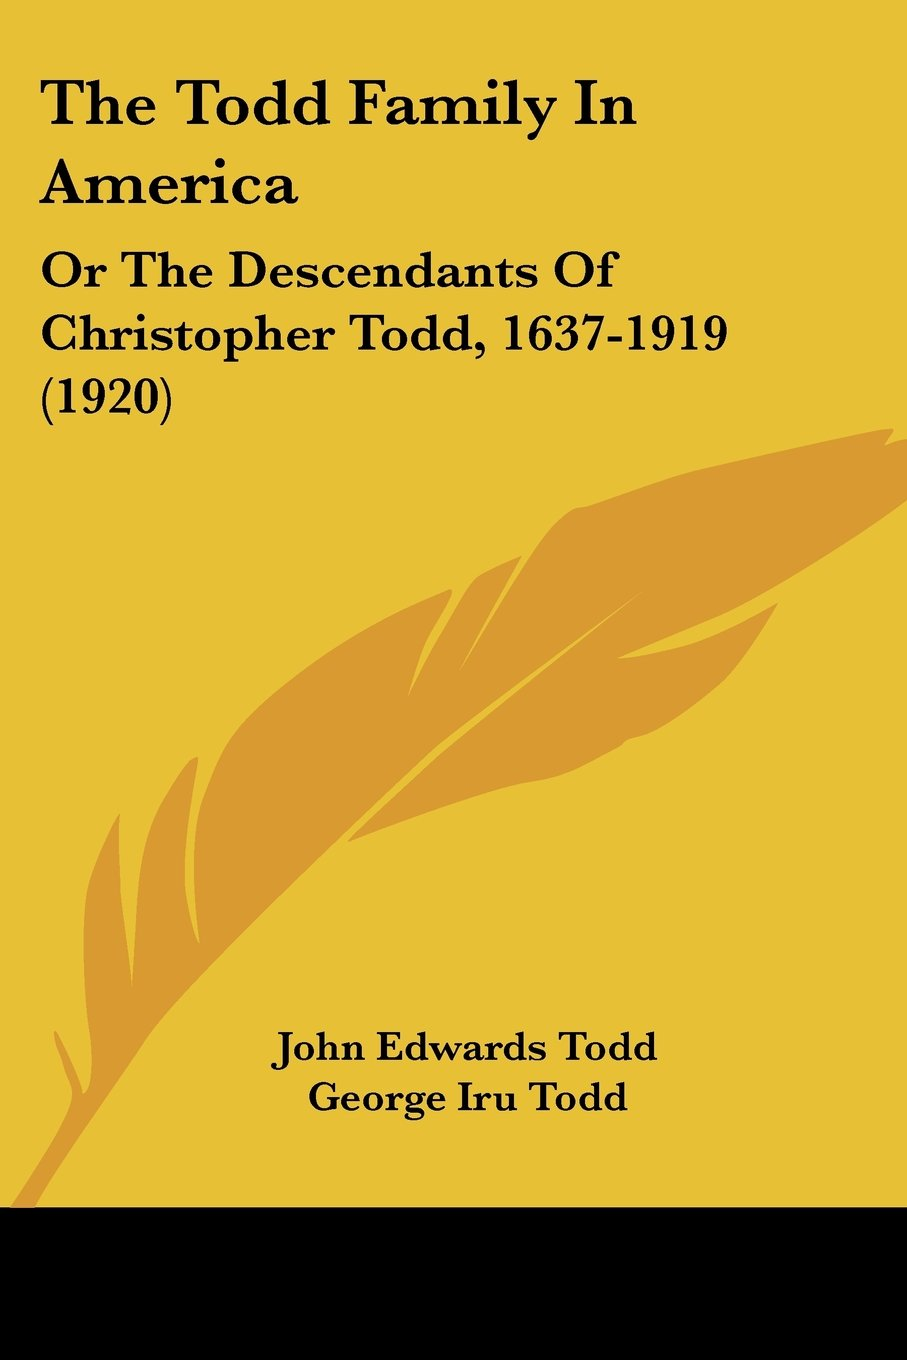 Download The Todd Family In America: Or The Descendants Of Christopher Todd, 1637-1919 (1920) ebook